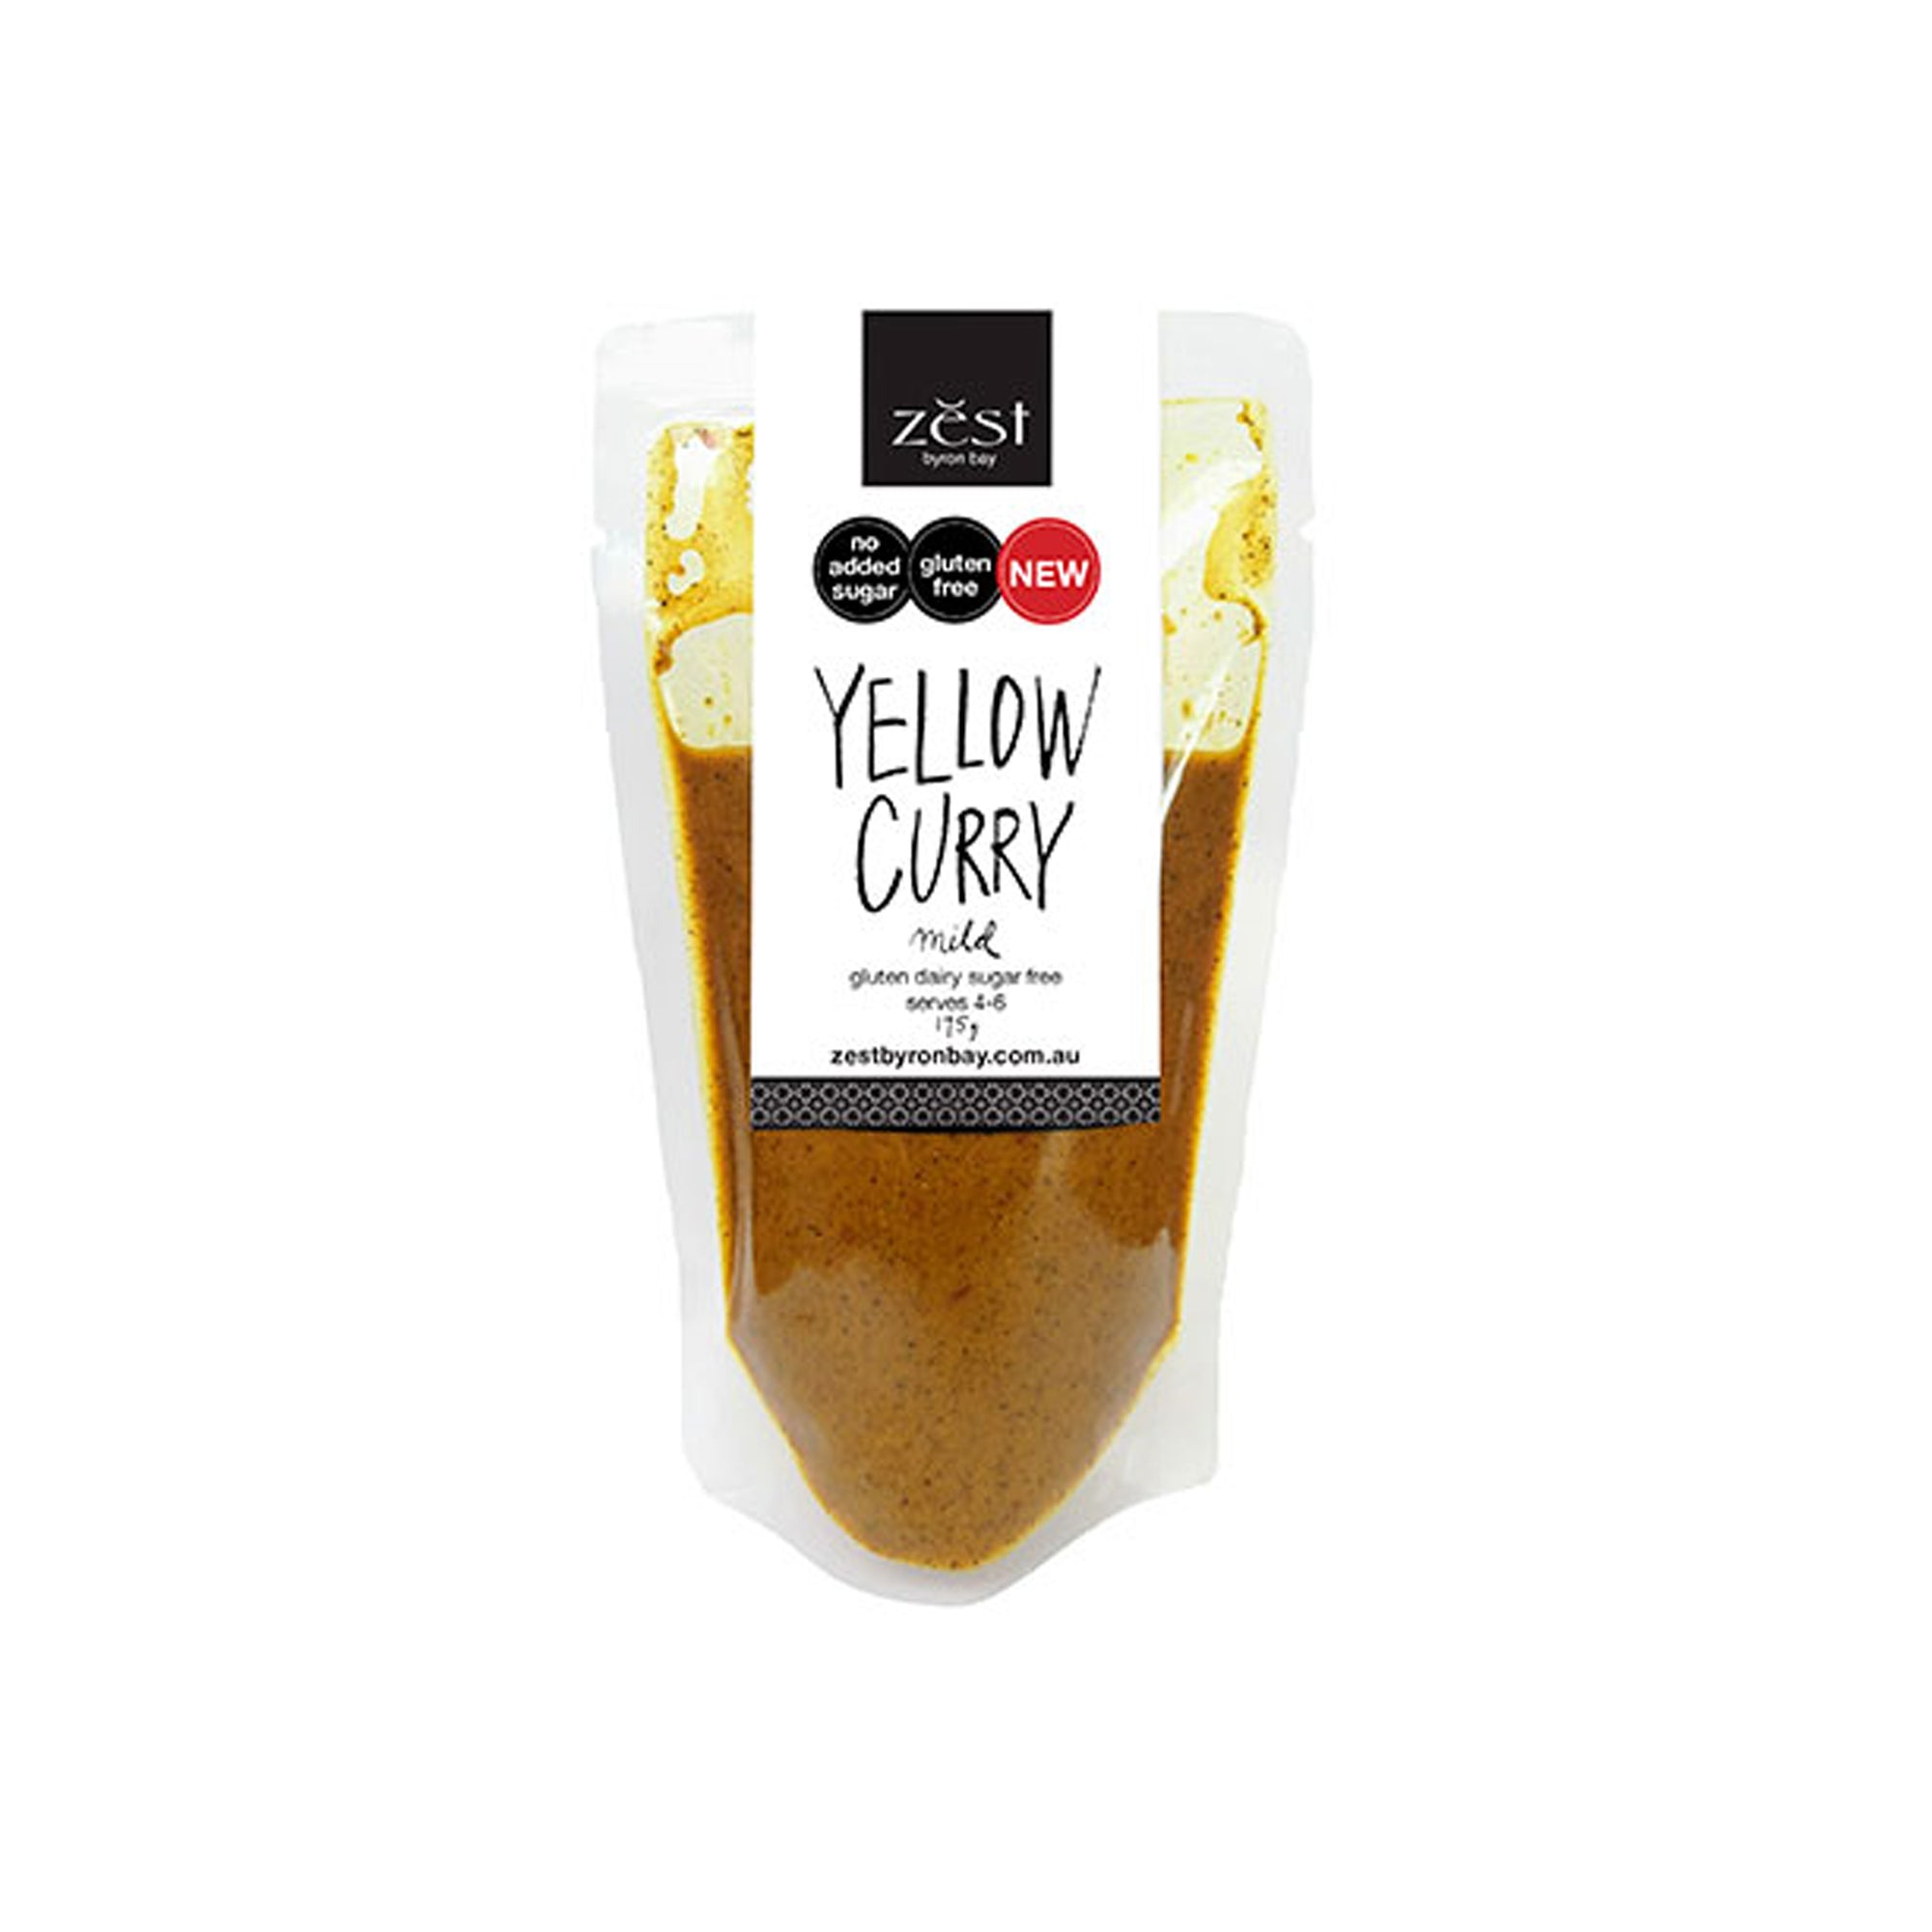 Zest Yellow Curry 175g